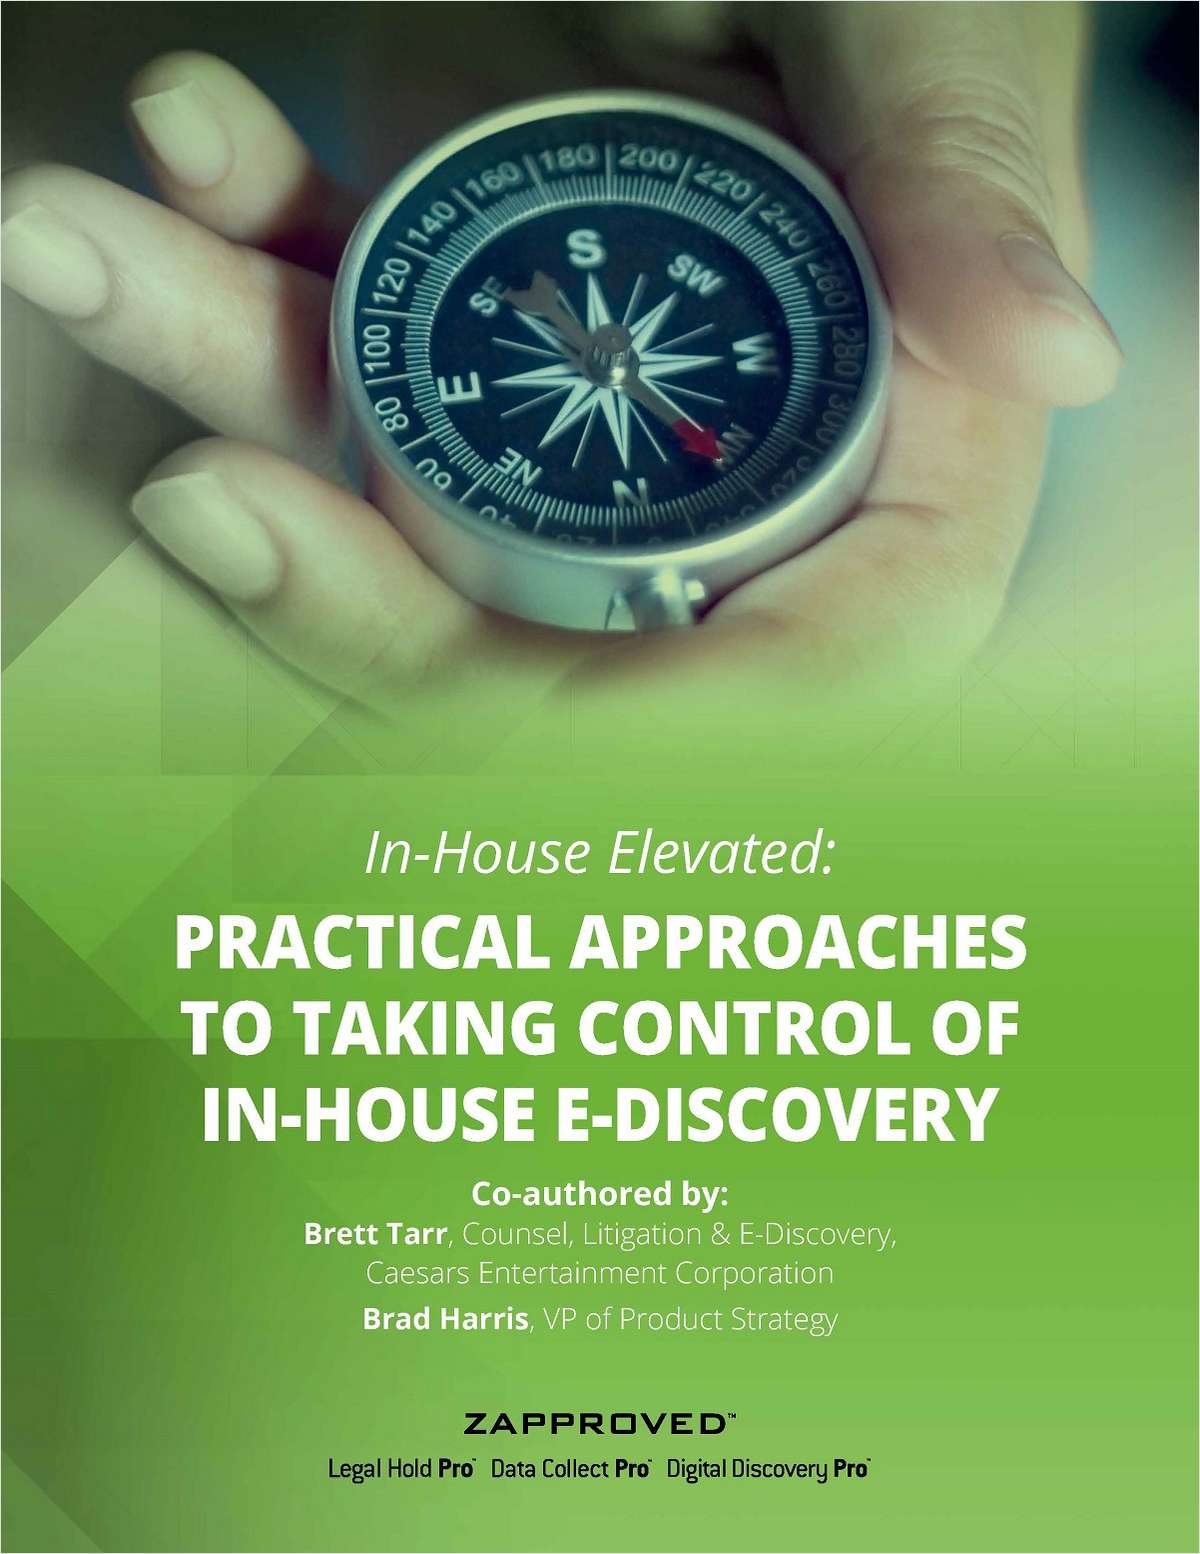 Practical Approaches to Taking Control of E-Discovery